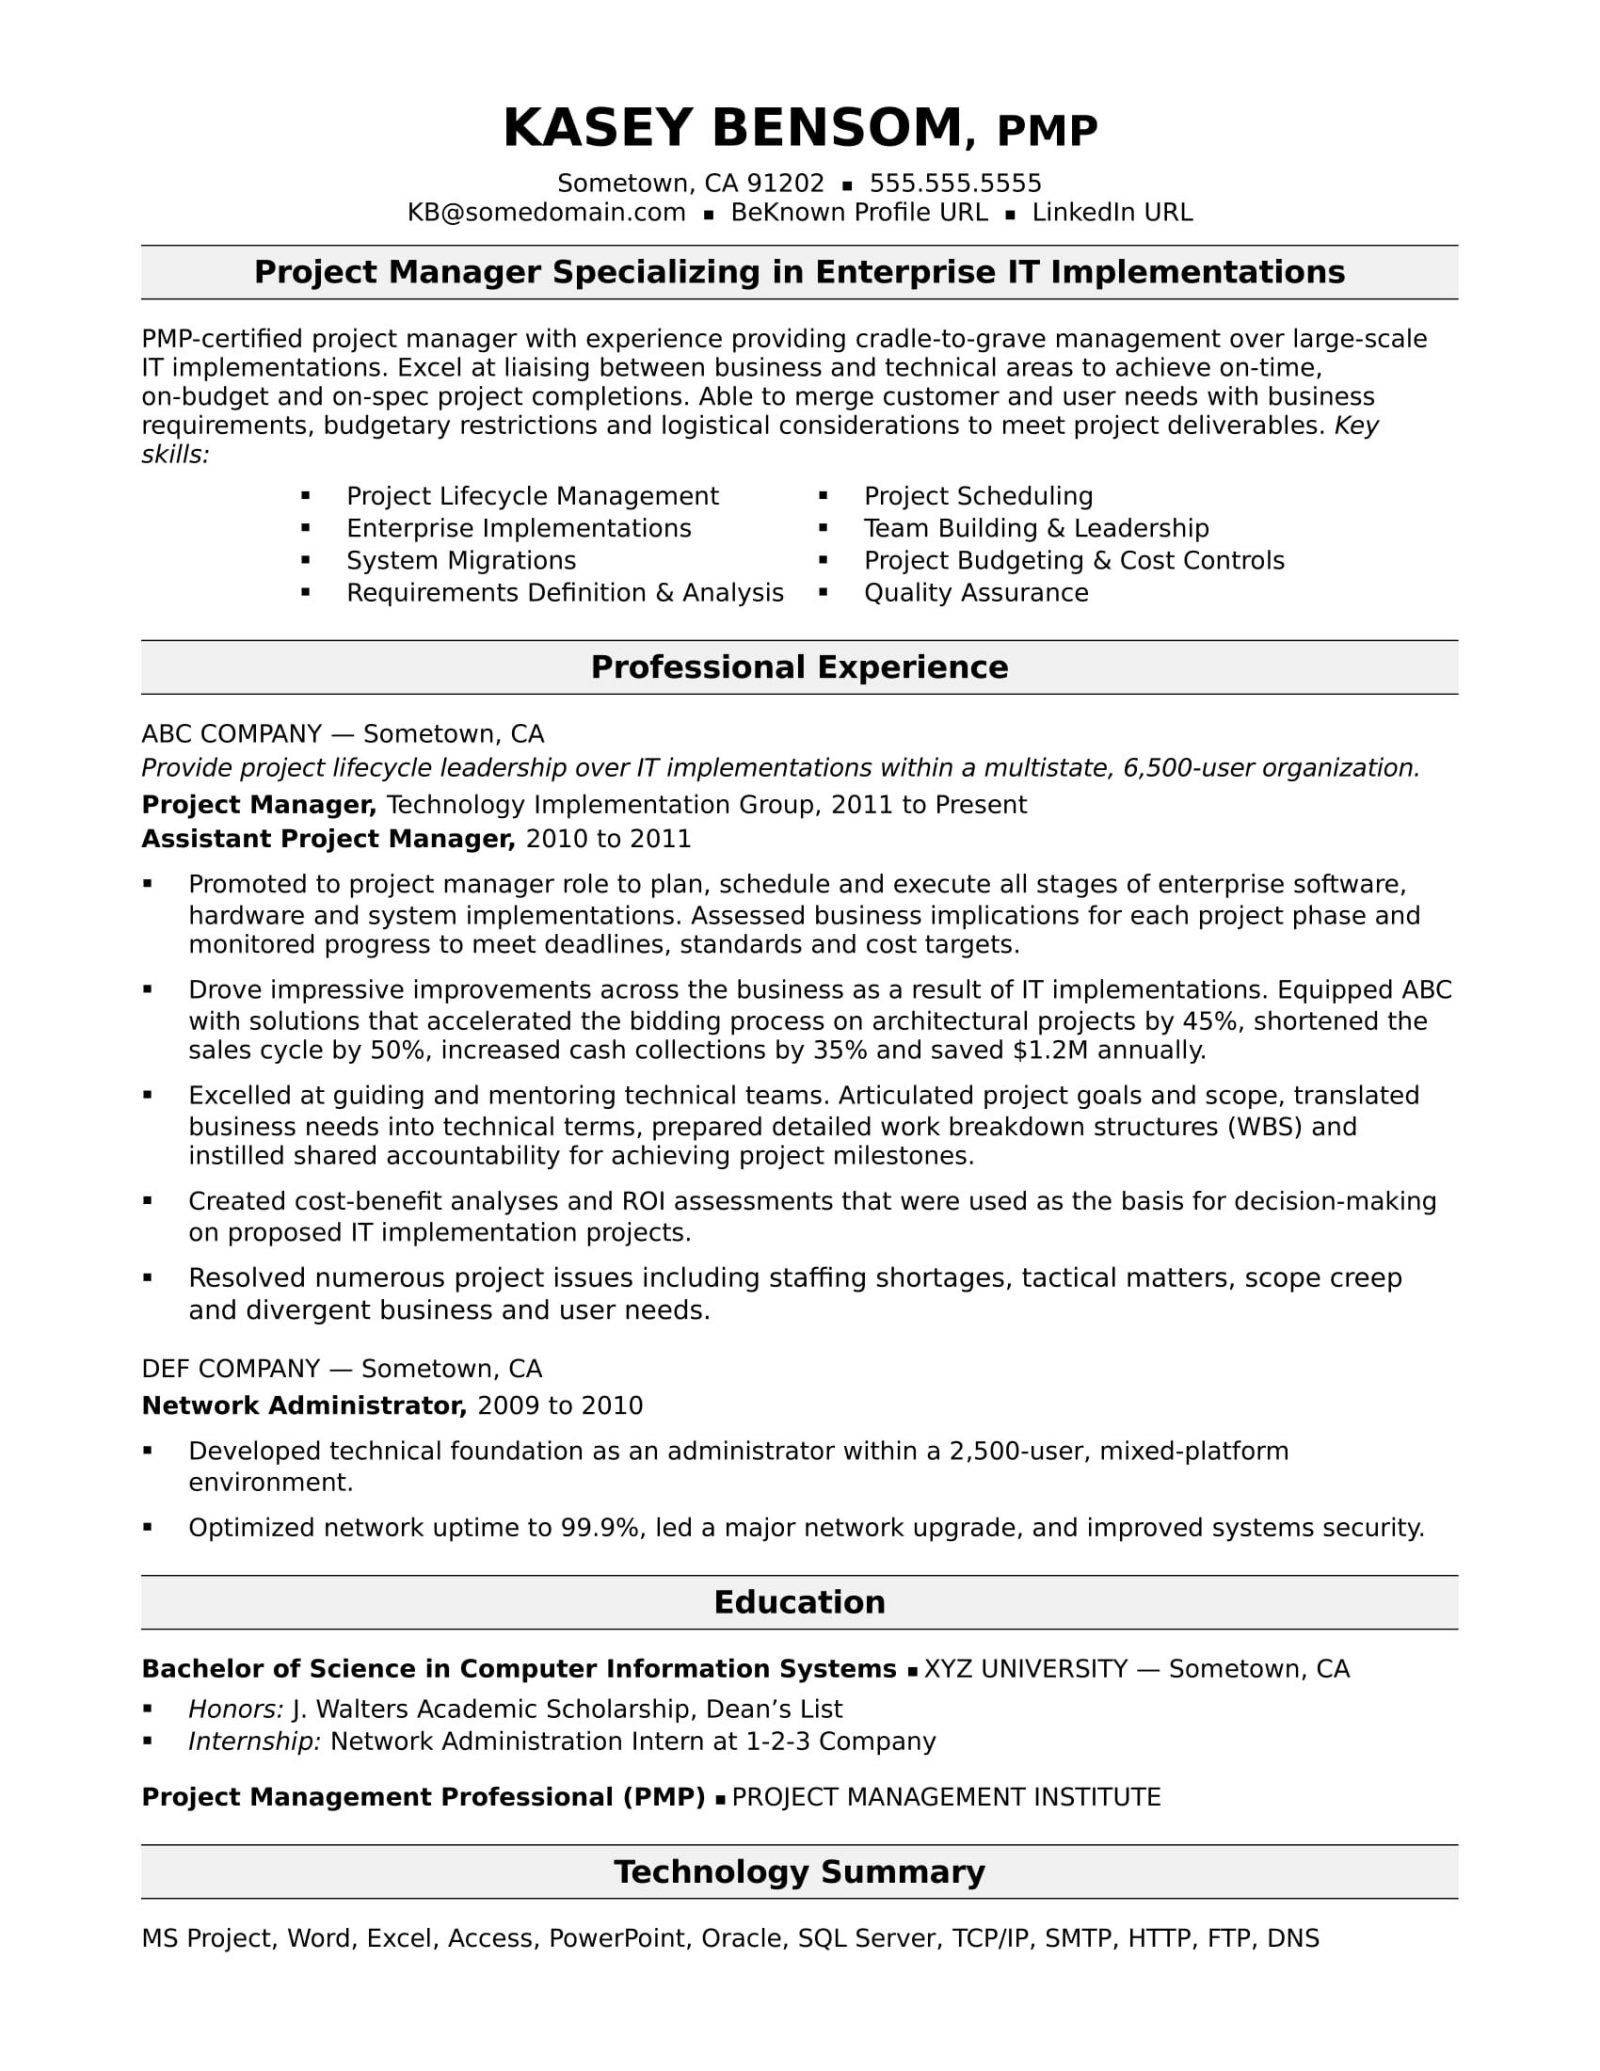 Project Management It Manager Resumes Best Of Account Resume With Project Management Resume Templates